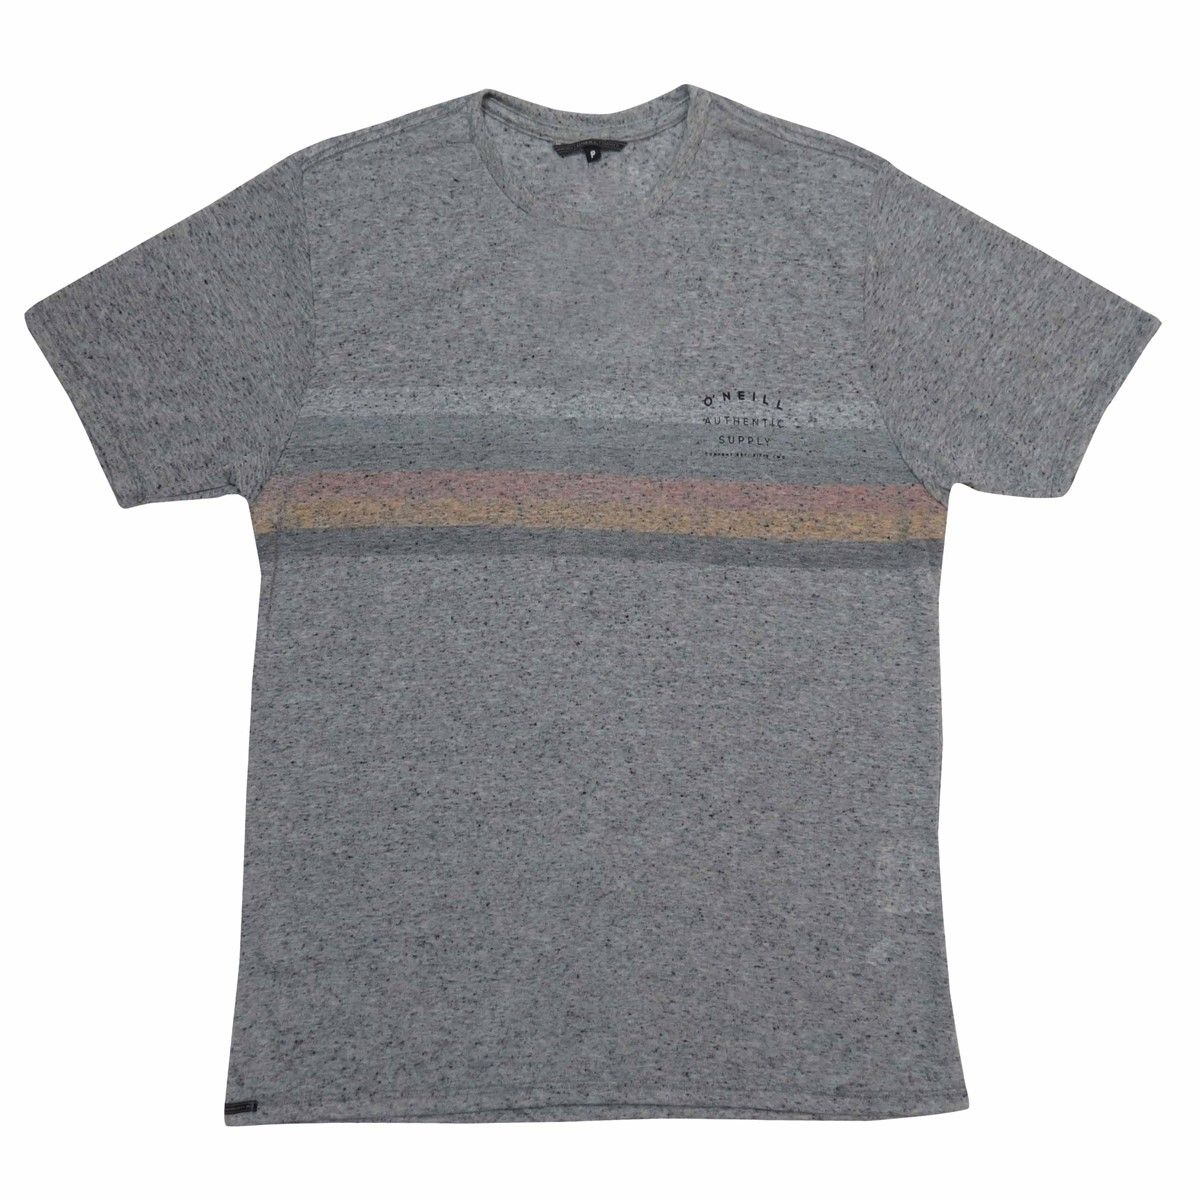 Camiseta O'Neill Estampa Bad Vibes Mescla Grey